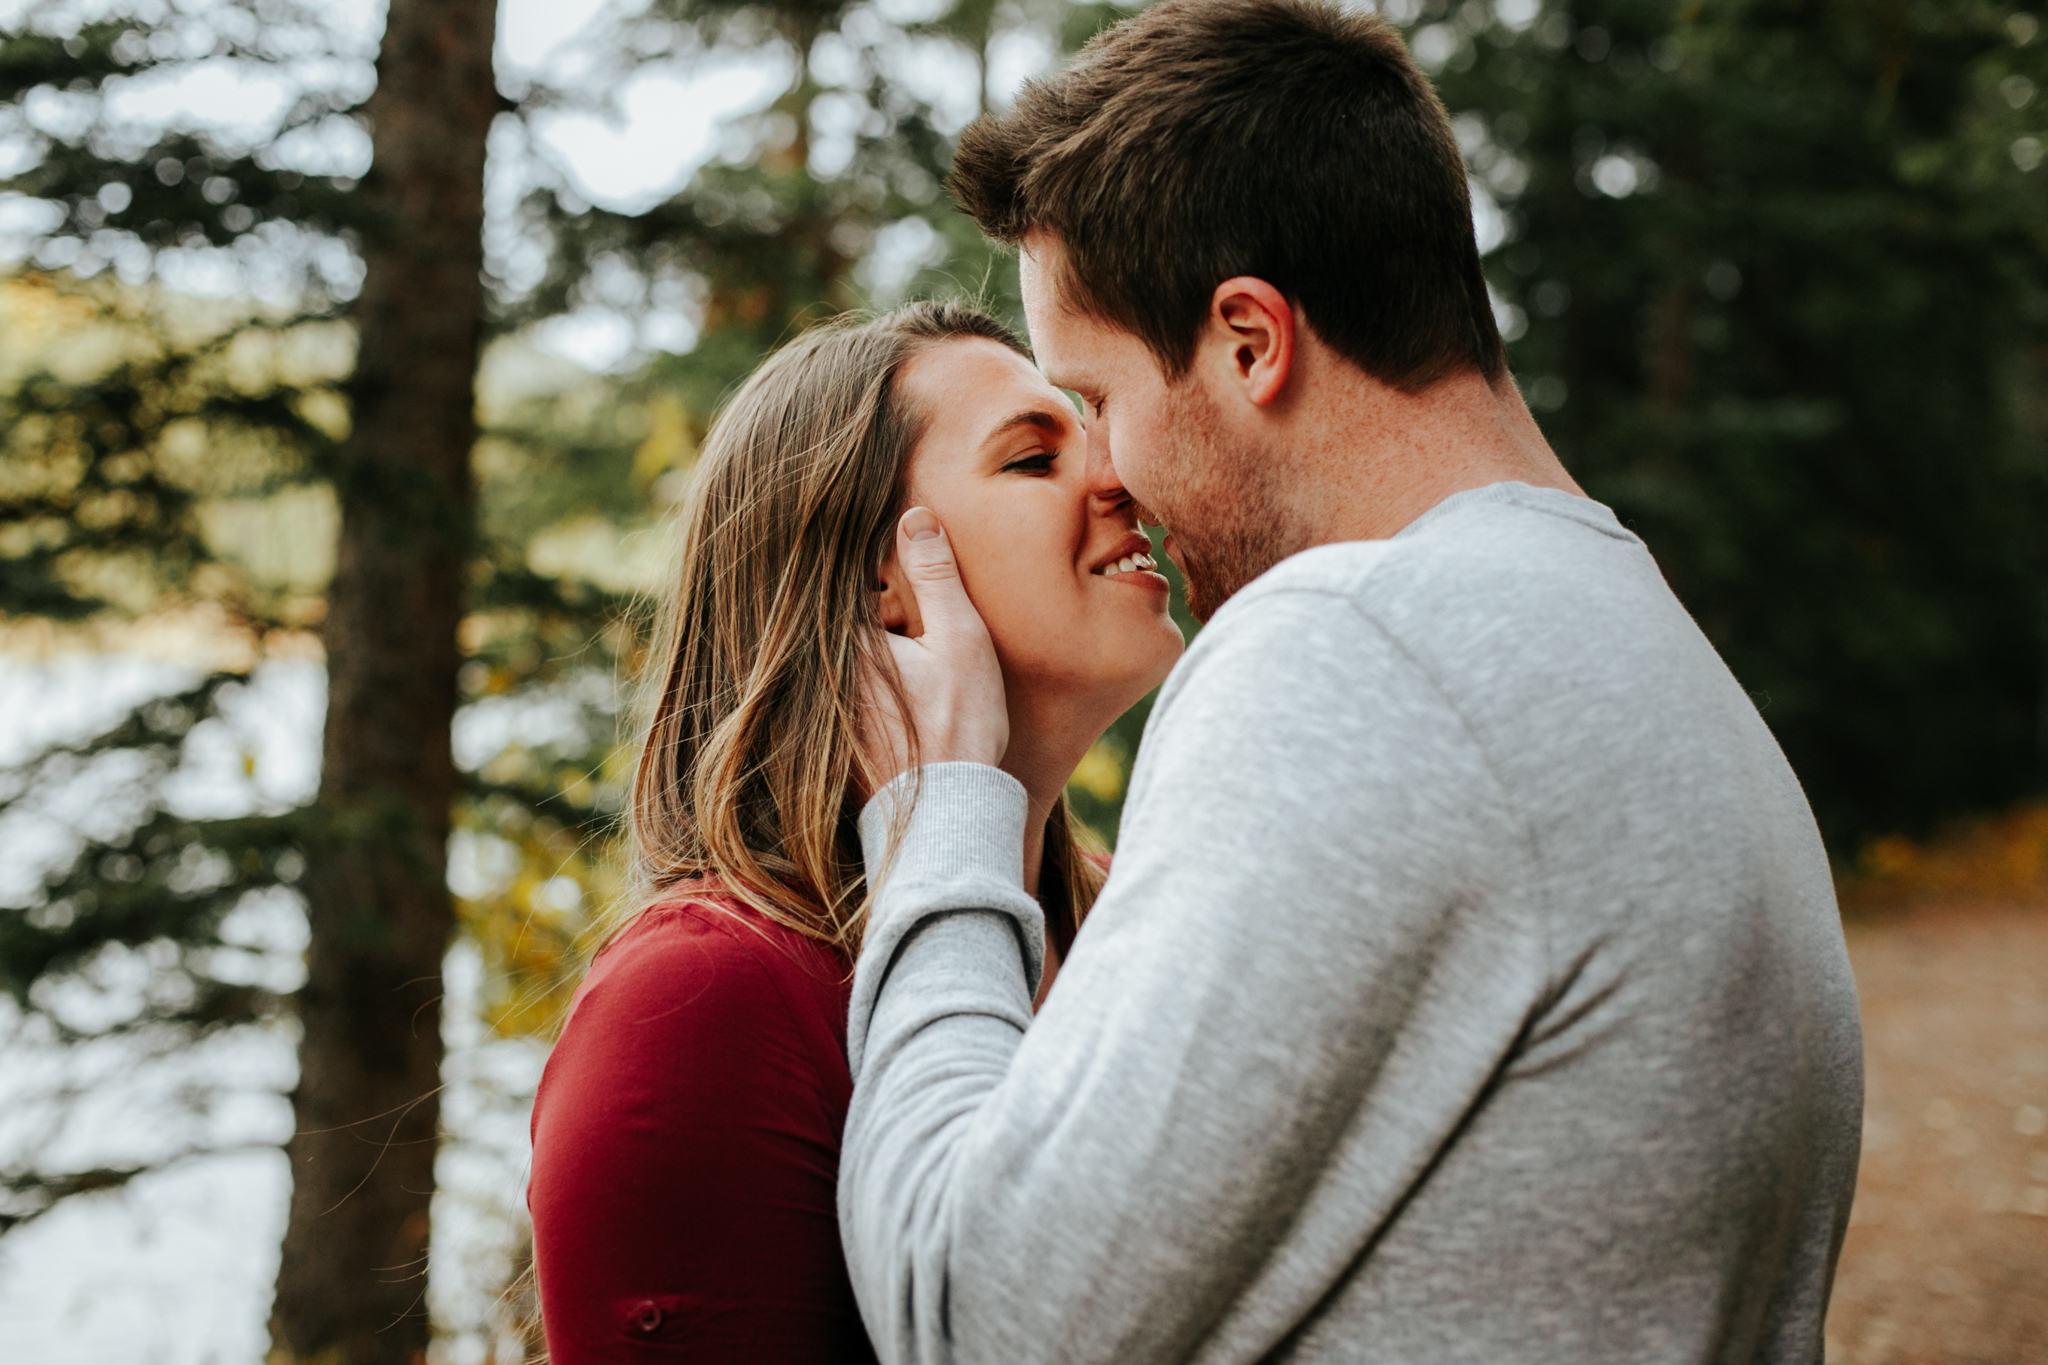 lethbridge-photographer-love-and-be-loved-photography-crowsnest-pass-engagement-andi-philip-picture-image-photo--32.jpg